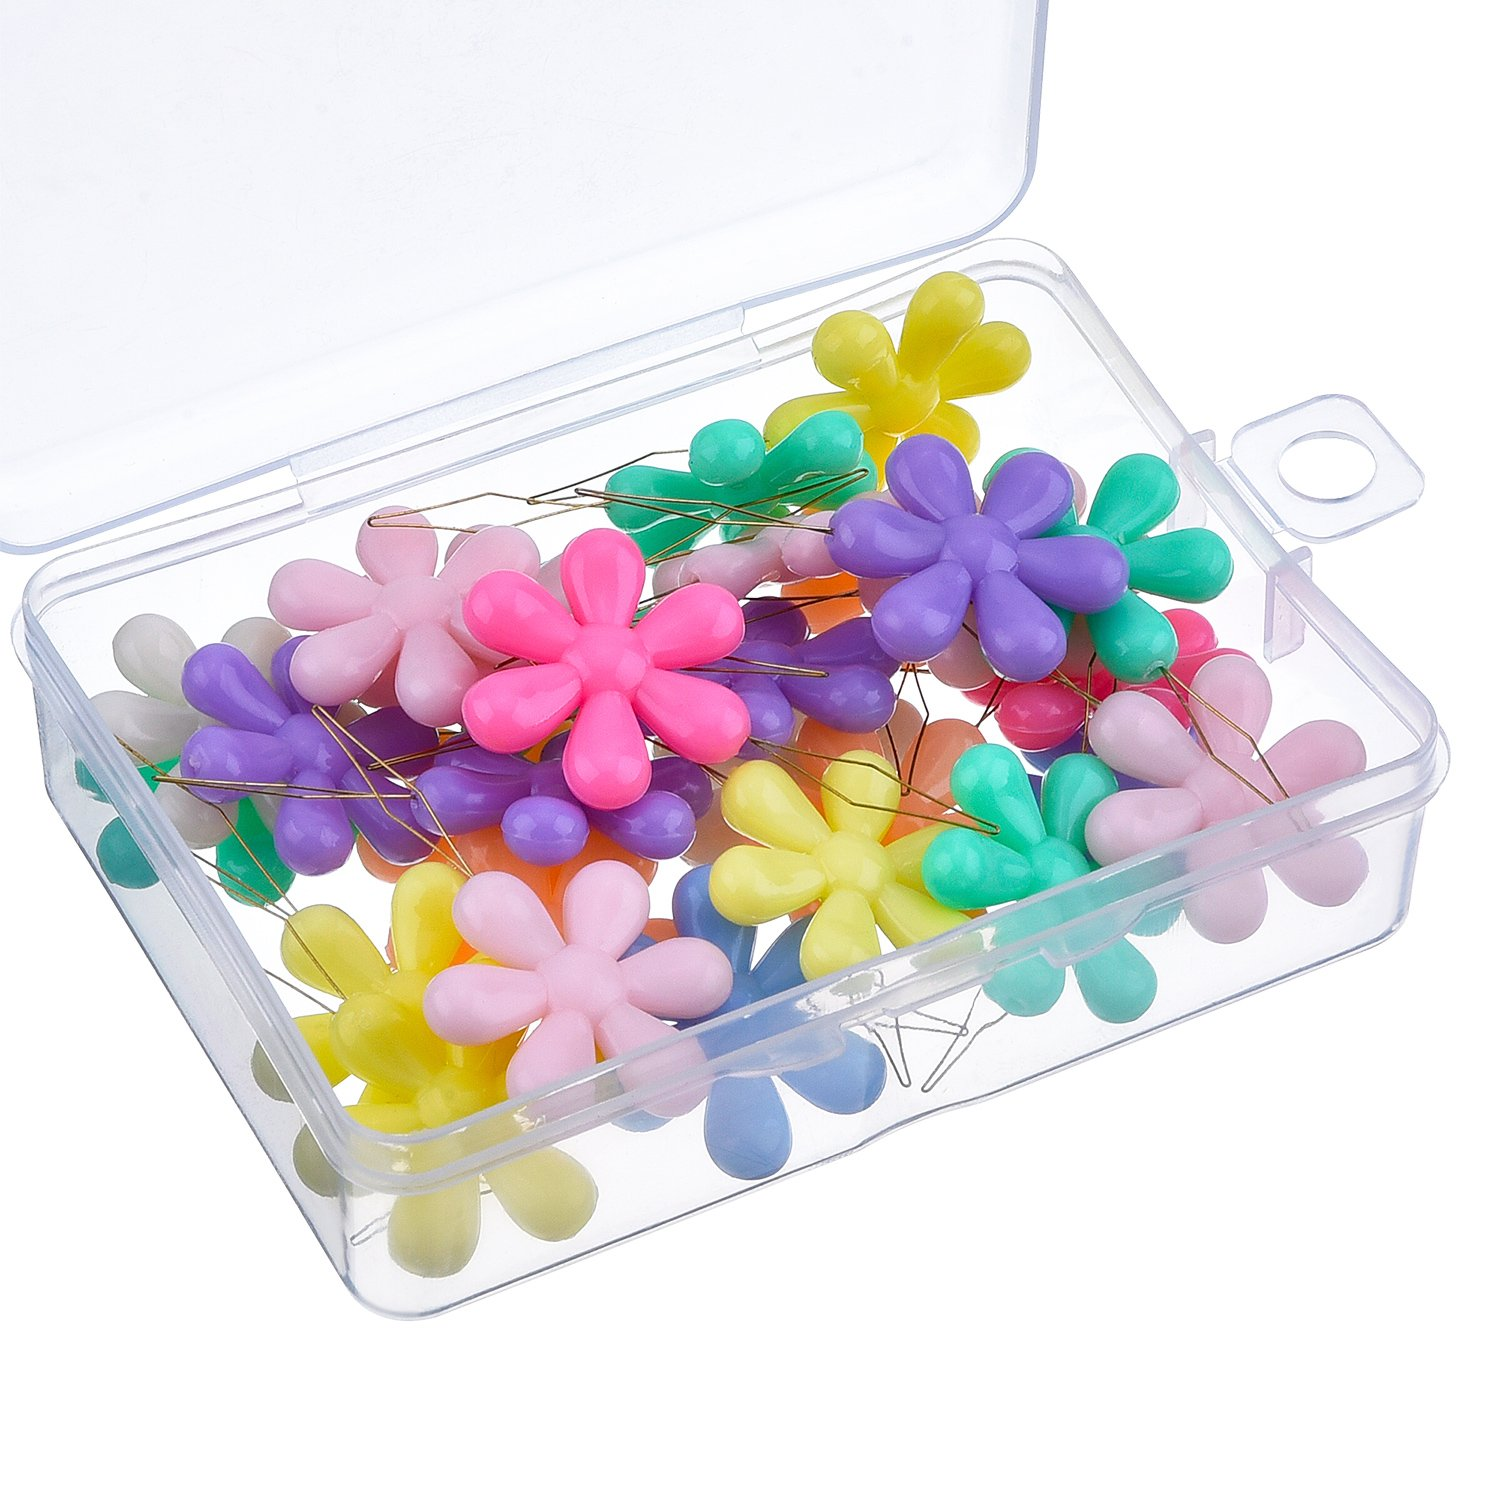 TecUnite 30 Pieces Multicolor Plastic Flower Head Wire Loop Needle Threader with Clear Box product image